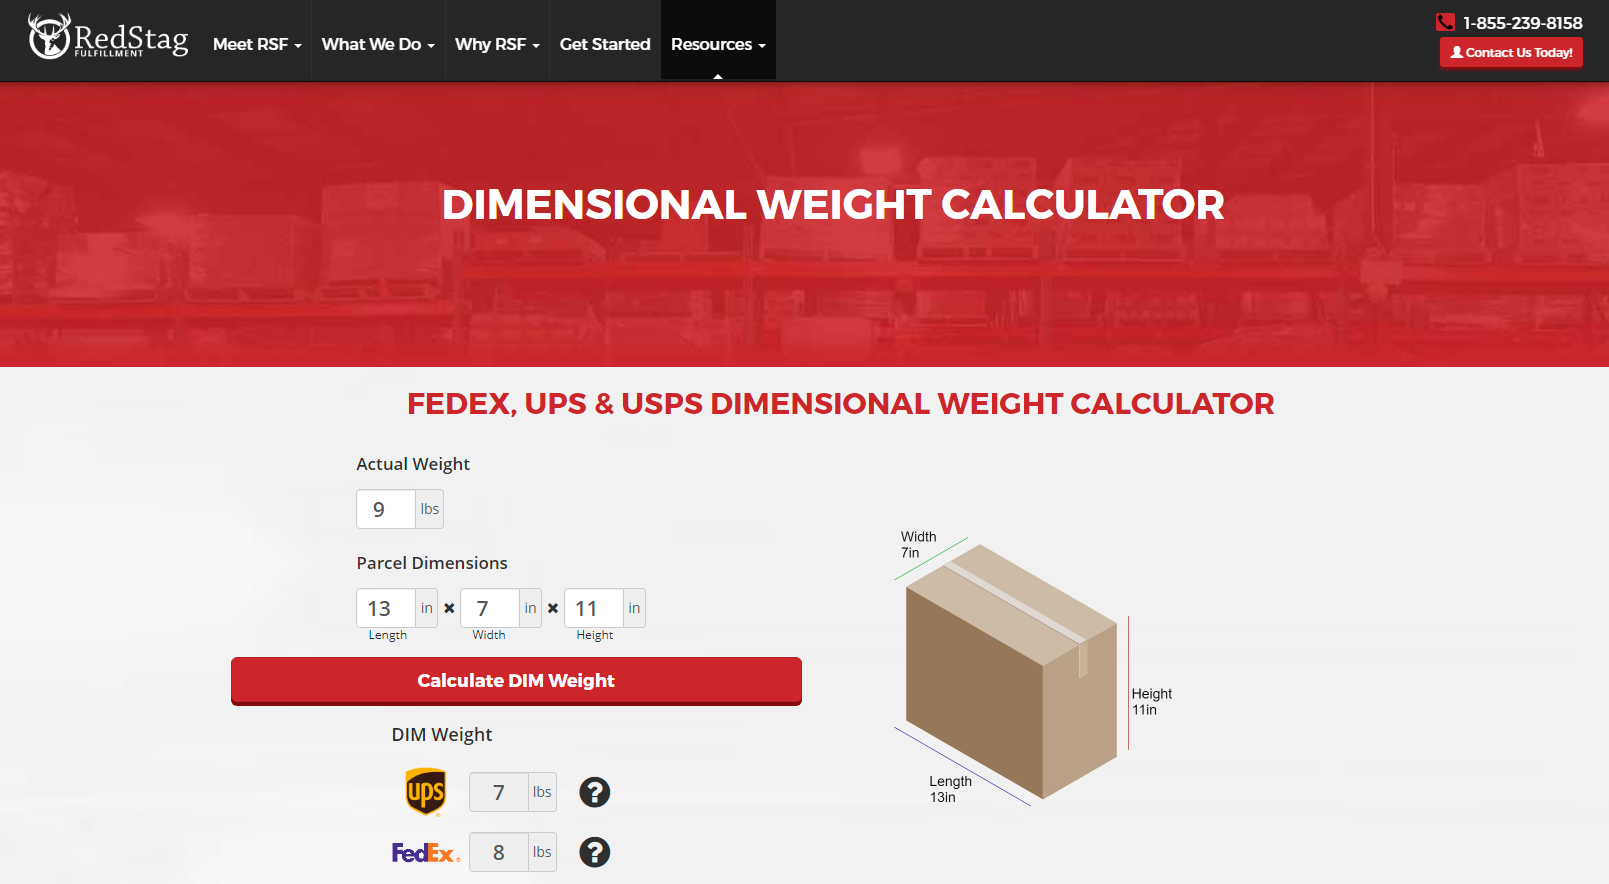 Red Stag Fulfillment lets users input the actual weight and dimensions of parcels to calculate its dimensional weight.